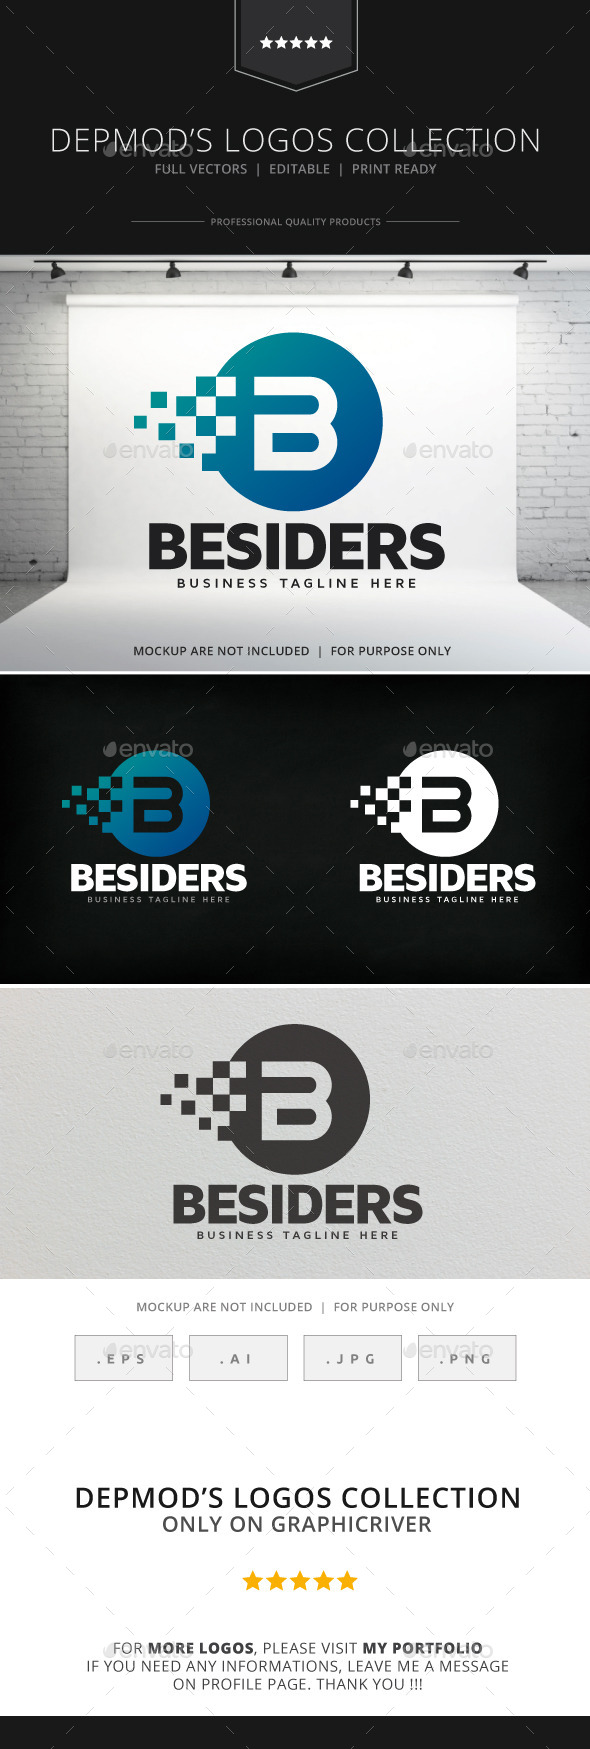 Besiders V.02 Logo